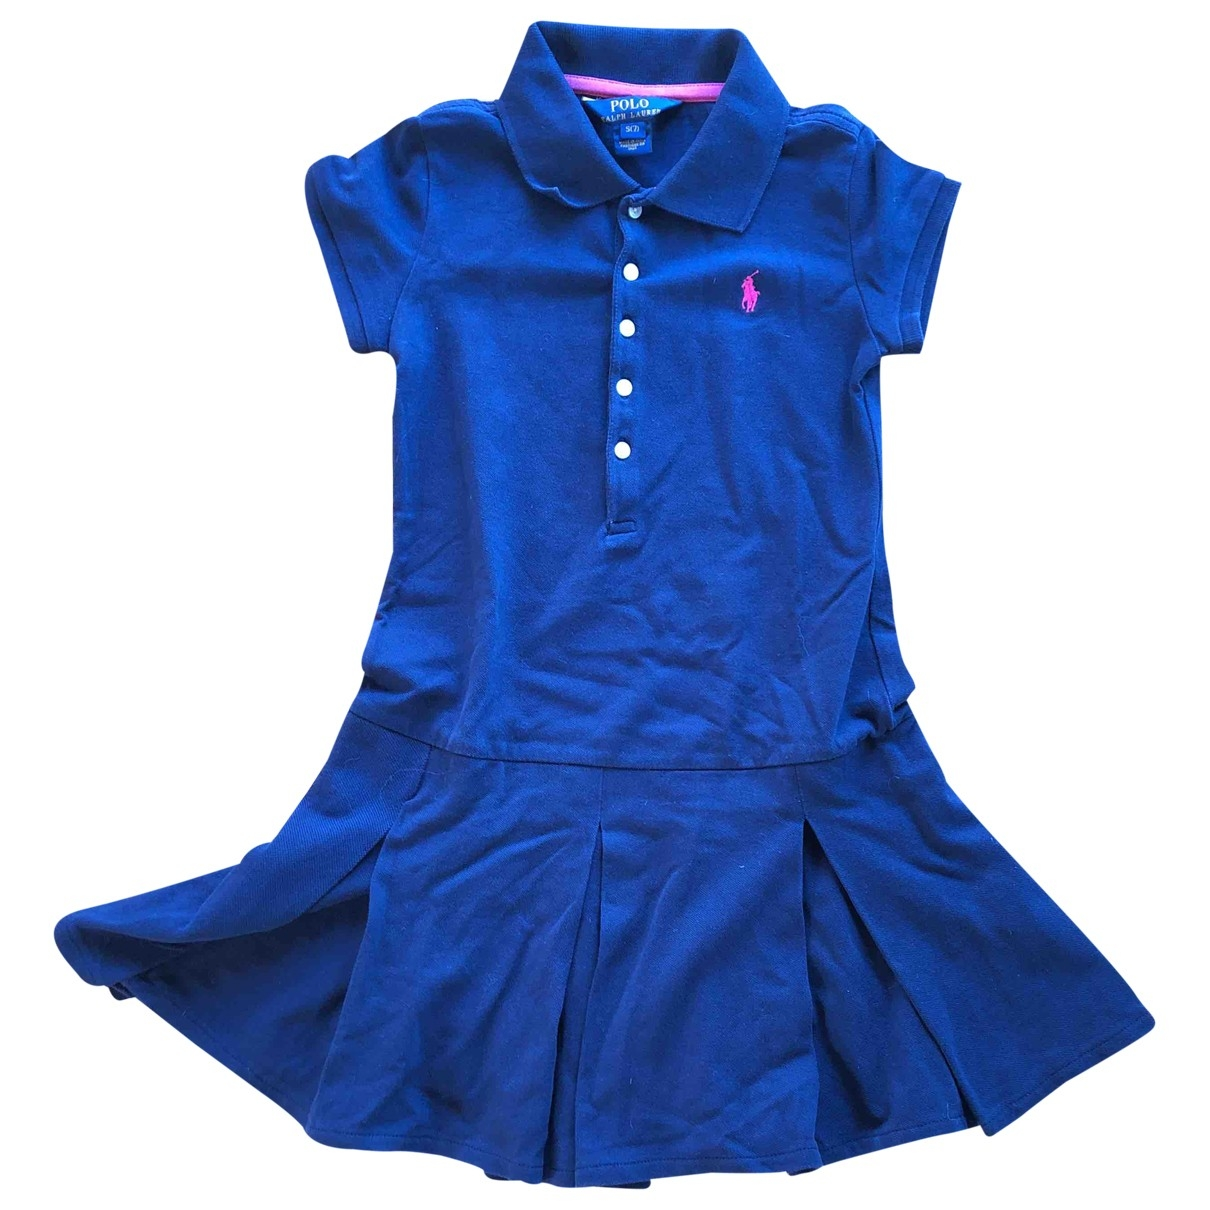 Polo Ralph Lauren \N Navy Cotton dress for Kids 6 years - up to 114cm FR